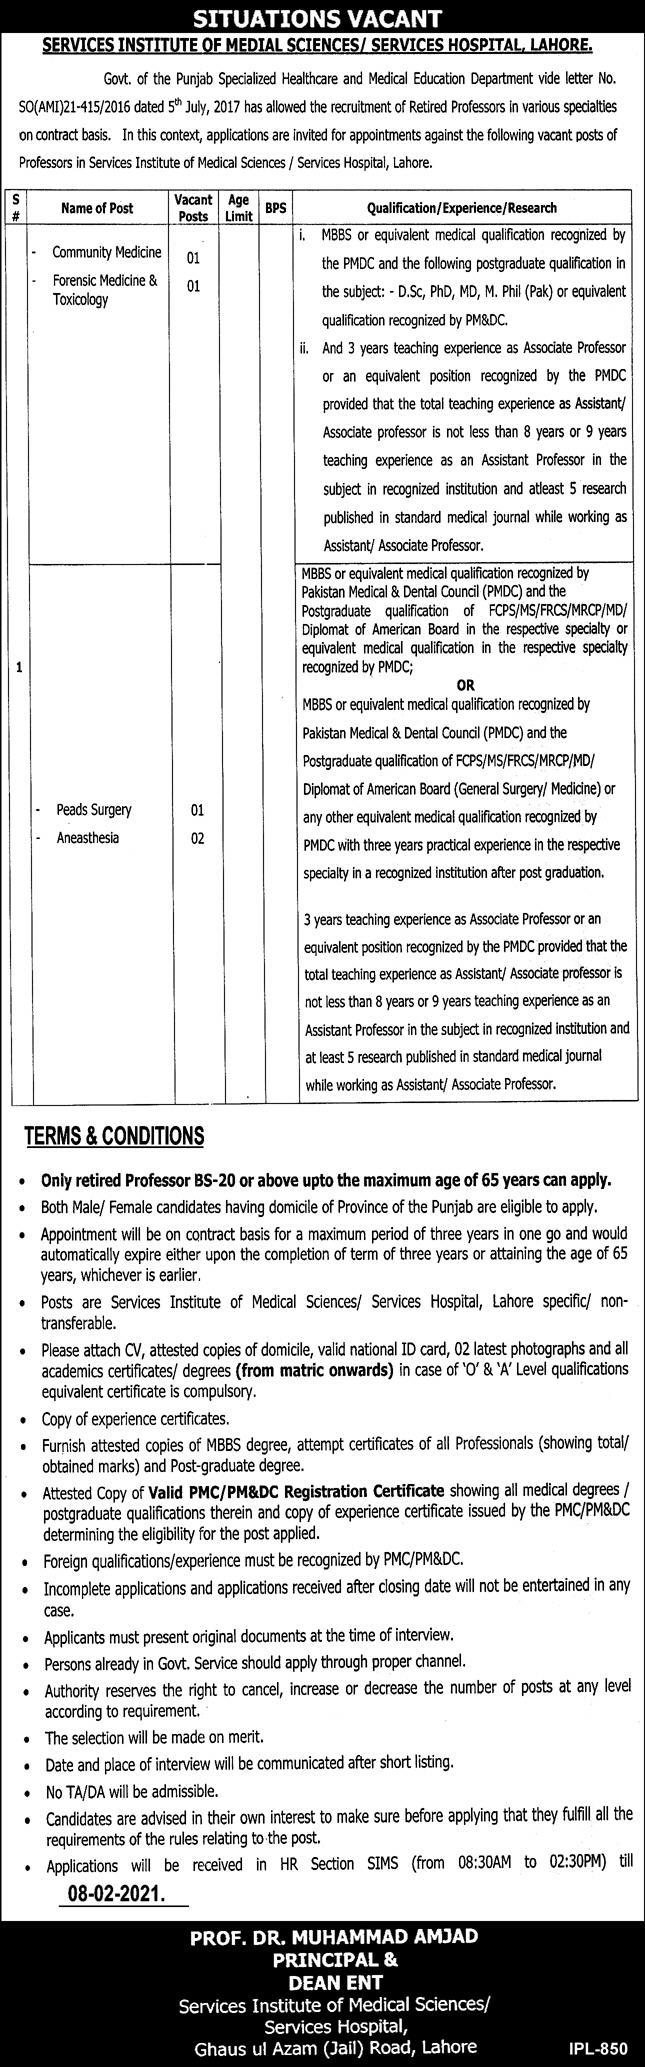 Services Institute of Medical Sciences / Services Hospital Lahore Jobs 2021